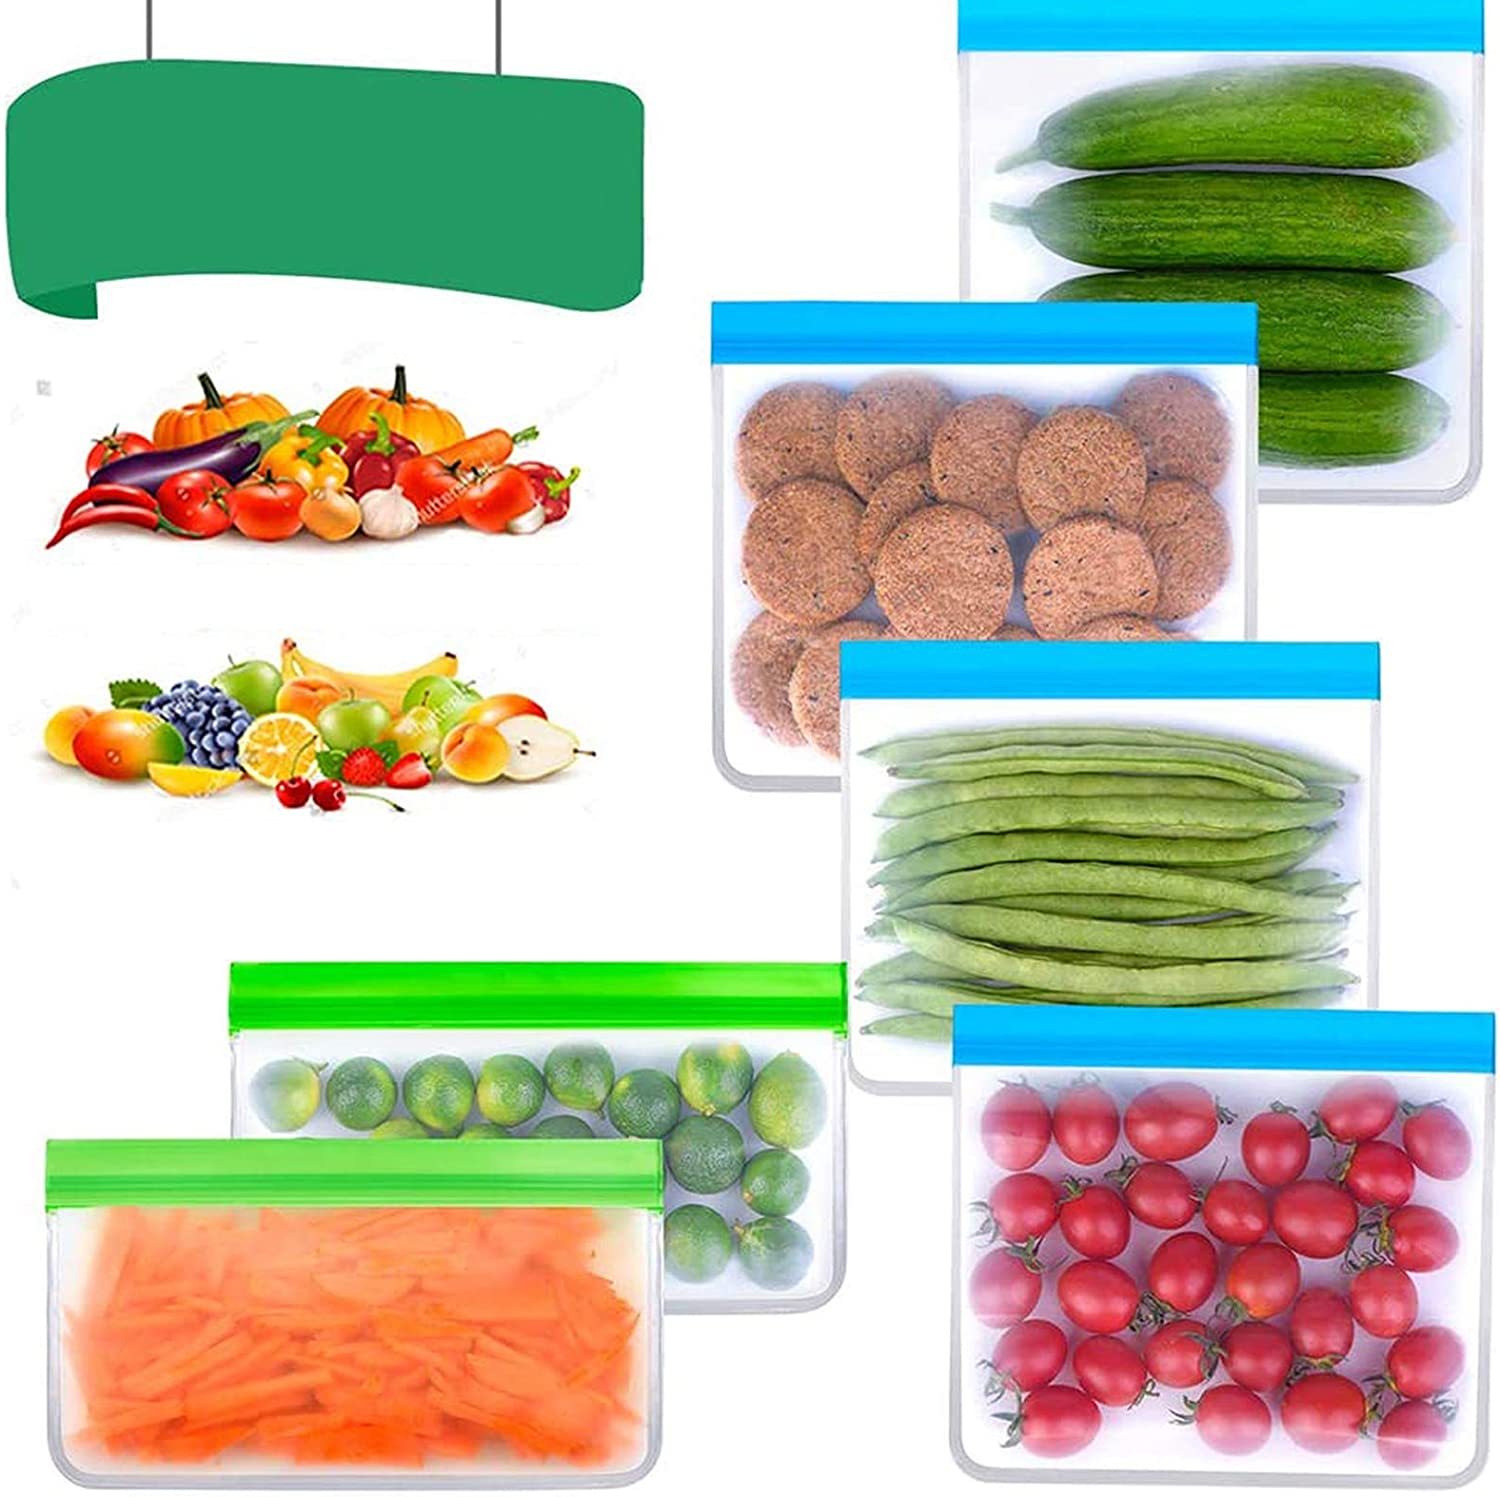 Reusable Storage Bags Silicone Freezer Bags 10 Pack Reusable Sandwich Bags Leakproof Zip lock Bags Eco-friendly BPA FREE for Snack Meat Fruits Cereal Gallon Large Plastic Food Containers (6 Pack)